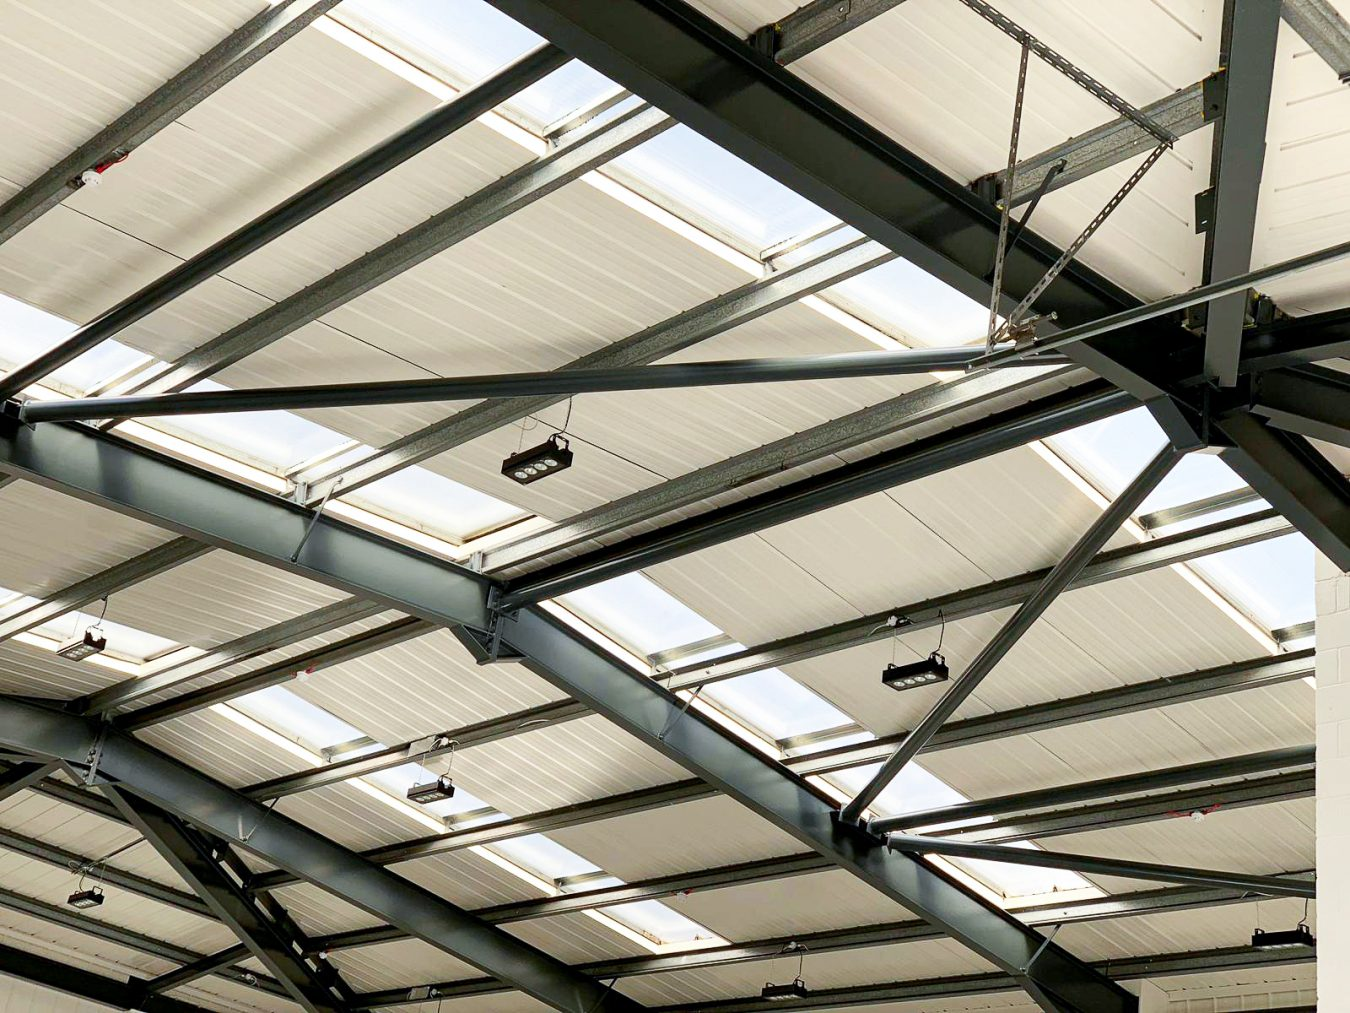 A warehouse refurbishment in Croydon, including the fit-out of a industrial roof structure. Suspended lights in warehouse roof to enhance brightness. Main building contractors in London.